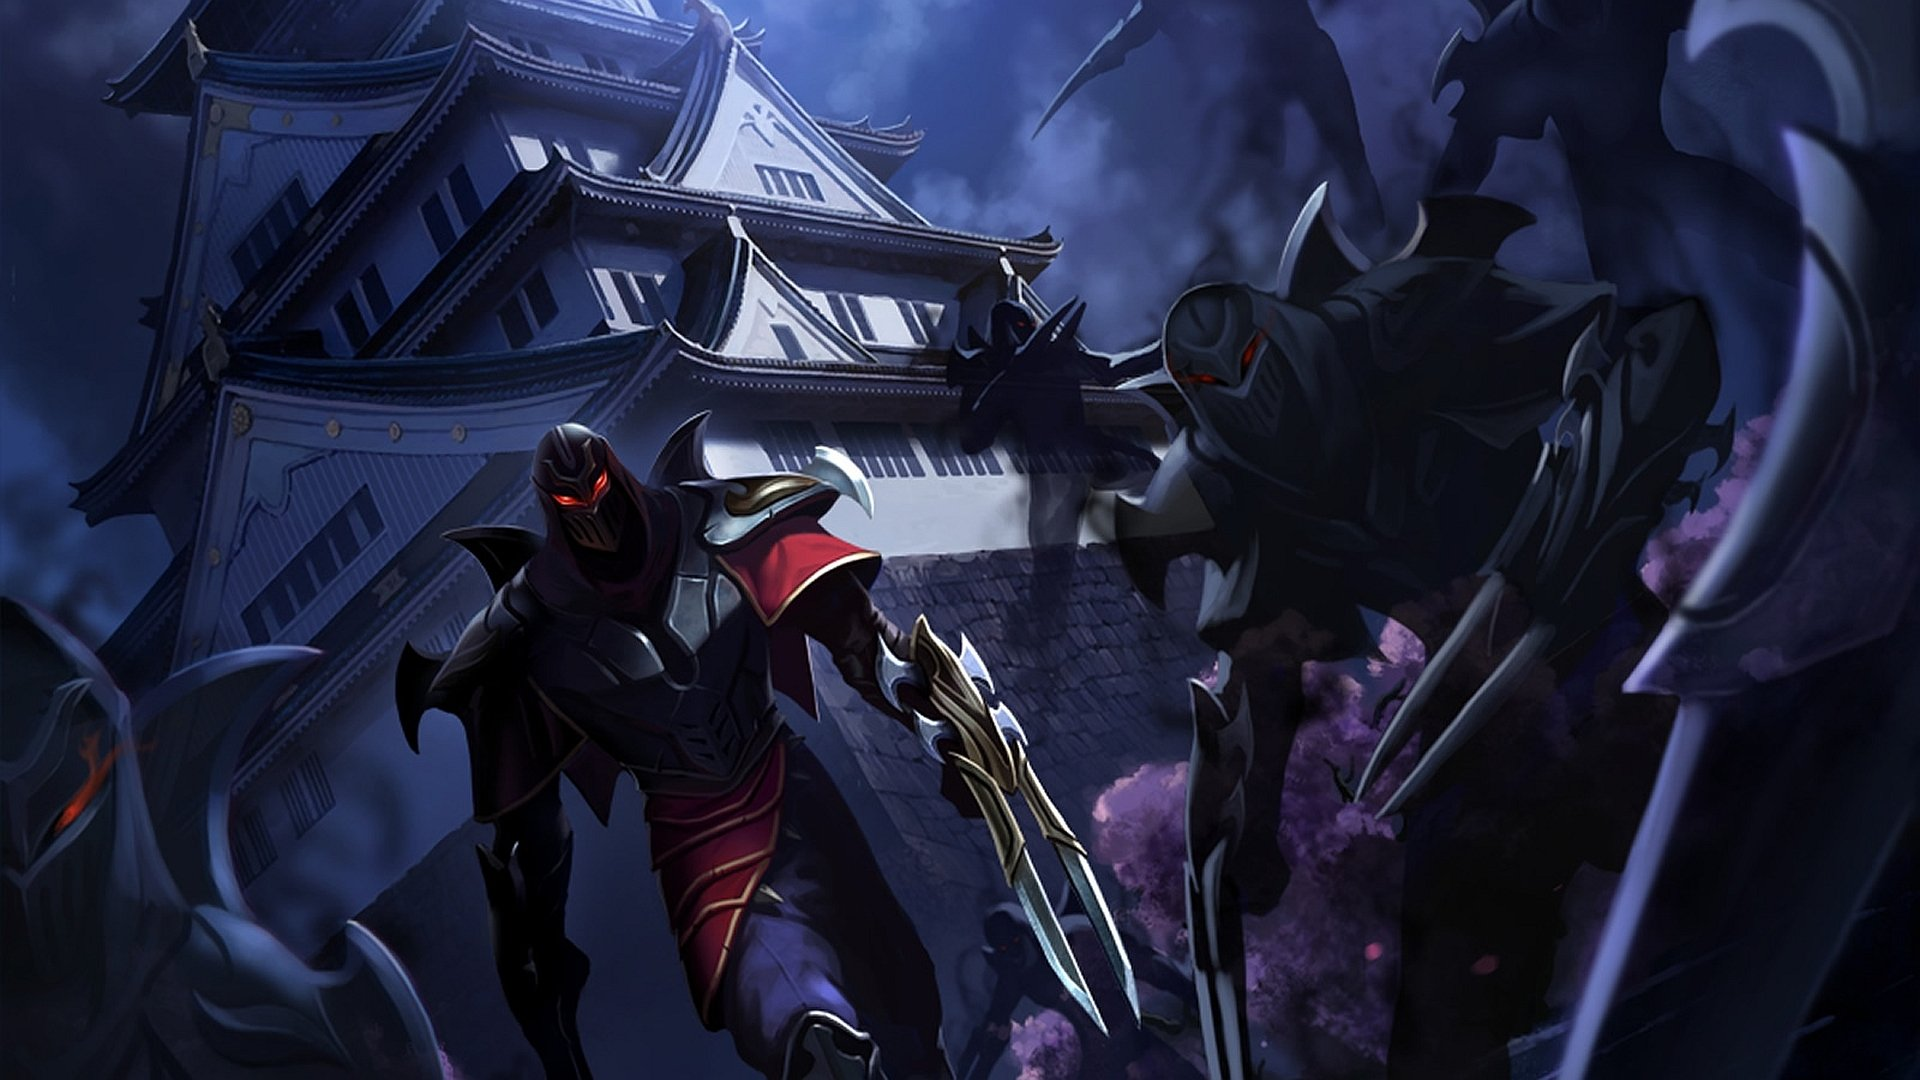 Video Game - League Of Legends  Zed (League Of Legends) Wallpaper